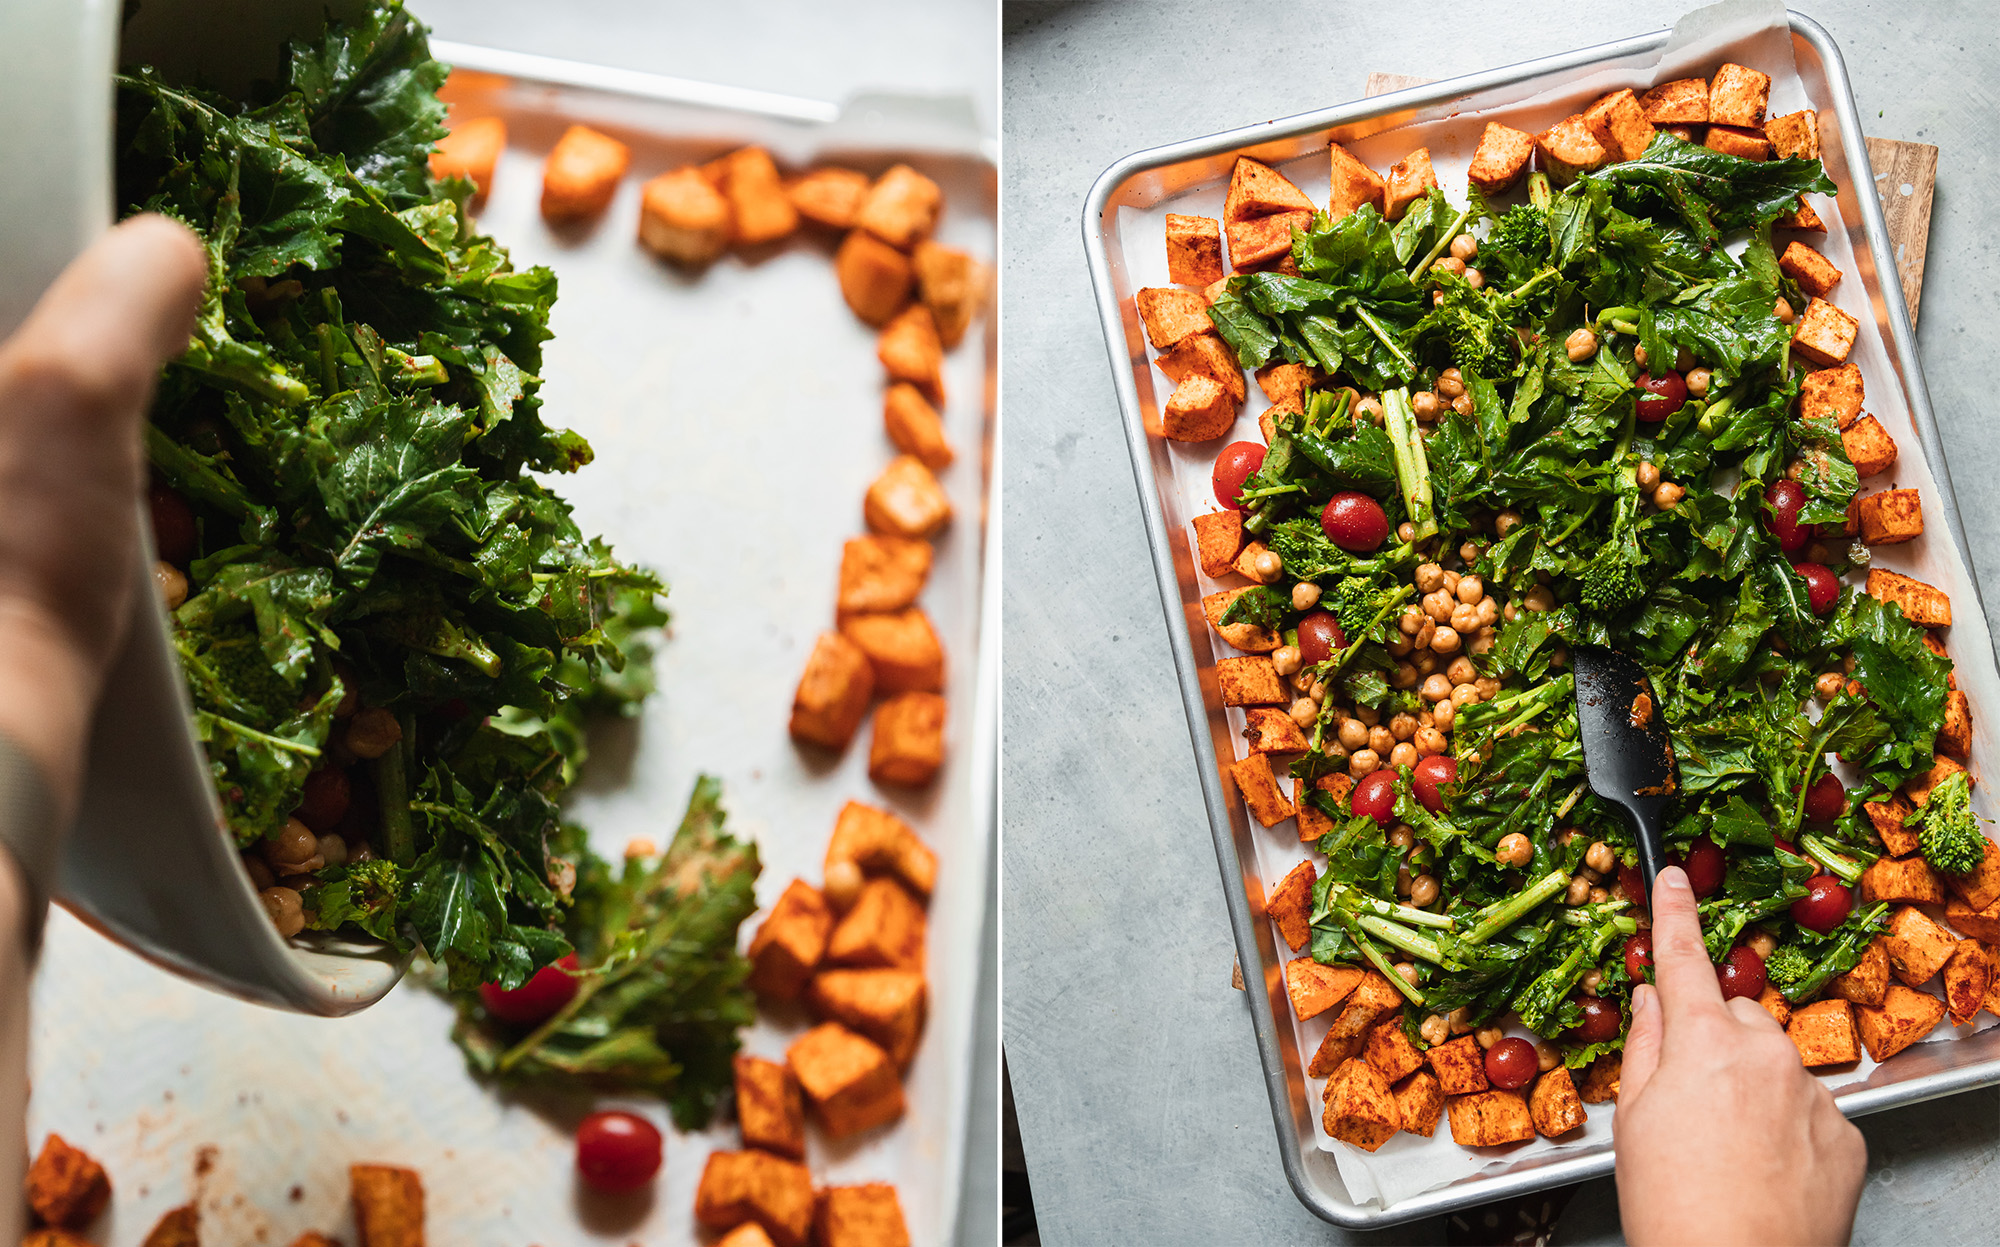 Two images show vegetables being emptied out onto a sheet pan and a hand spreading out vegetables on a sheet pan with a spatula.